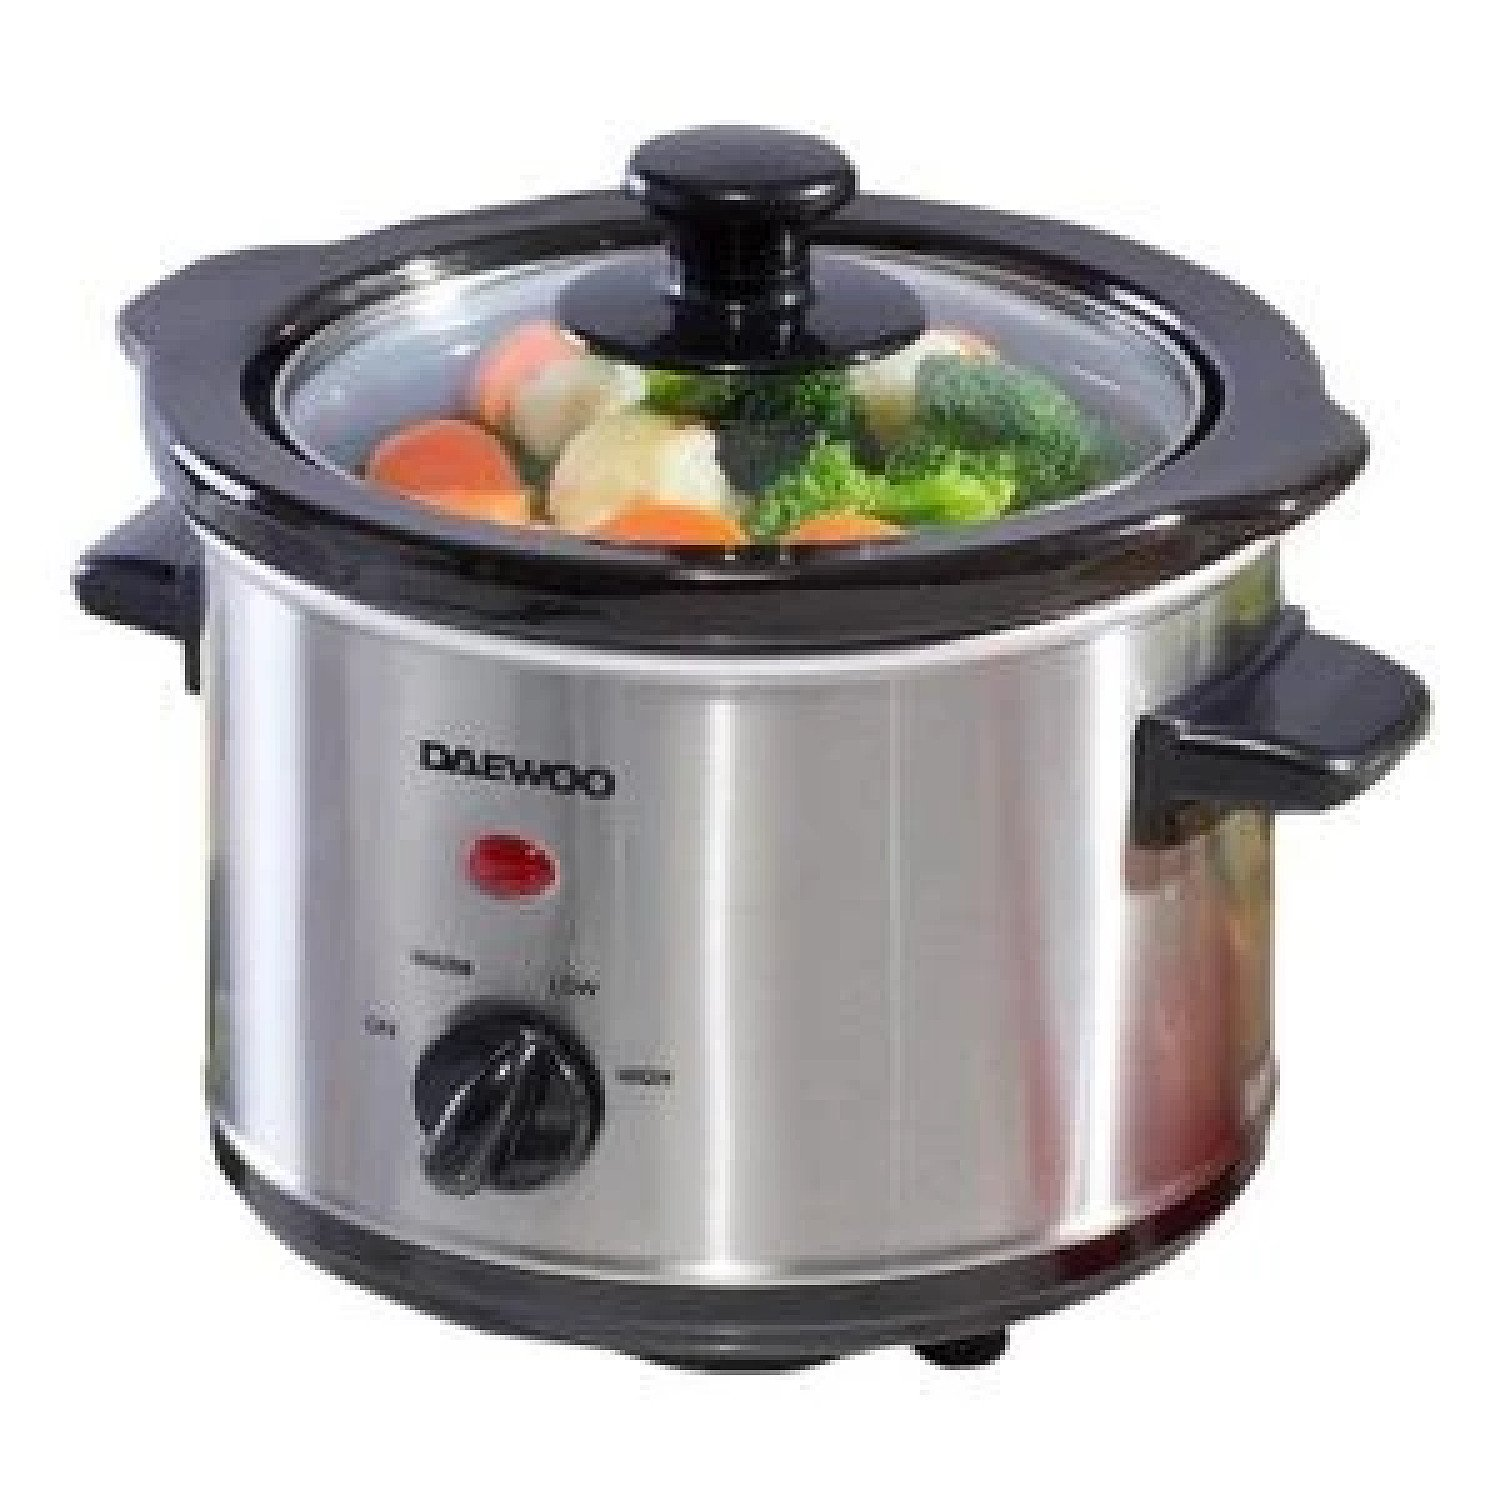 Daewoo 1.5L Compact Manual Slow Cooker Cooking ware - Stainless Steel Free Postage